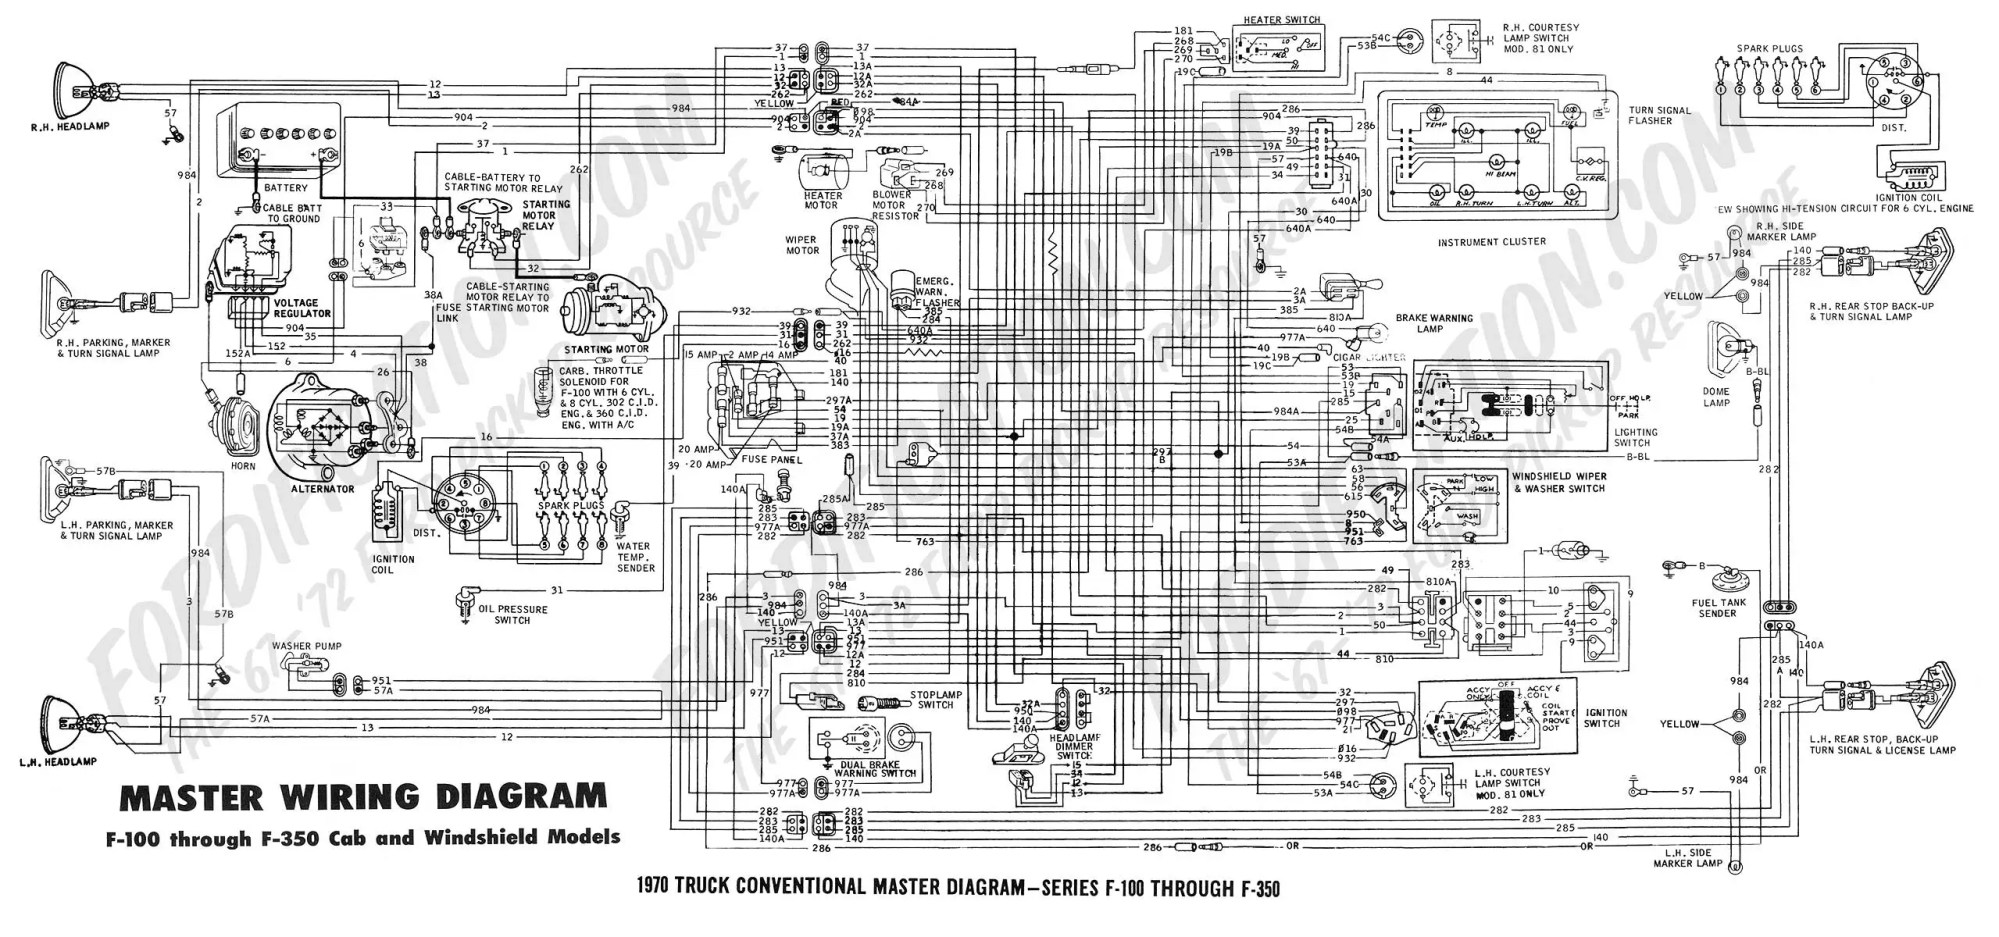 hight resolution of 2003 ford f250 wiring schematic wiring diagram expert 2003 ford f350 wiring harness 2003 ford f350 wiring harness